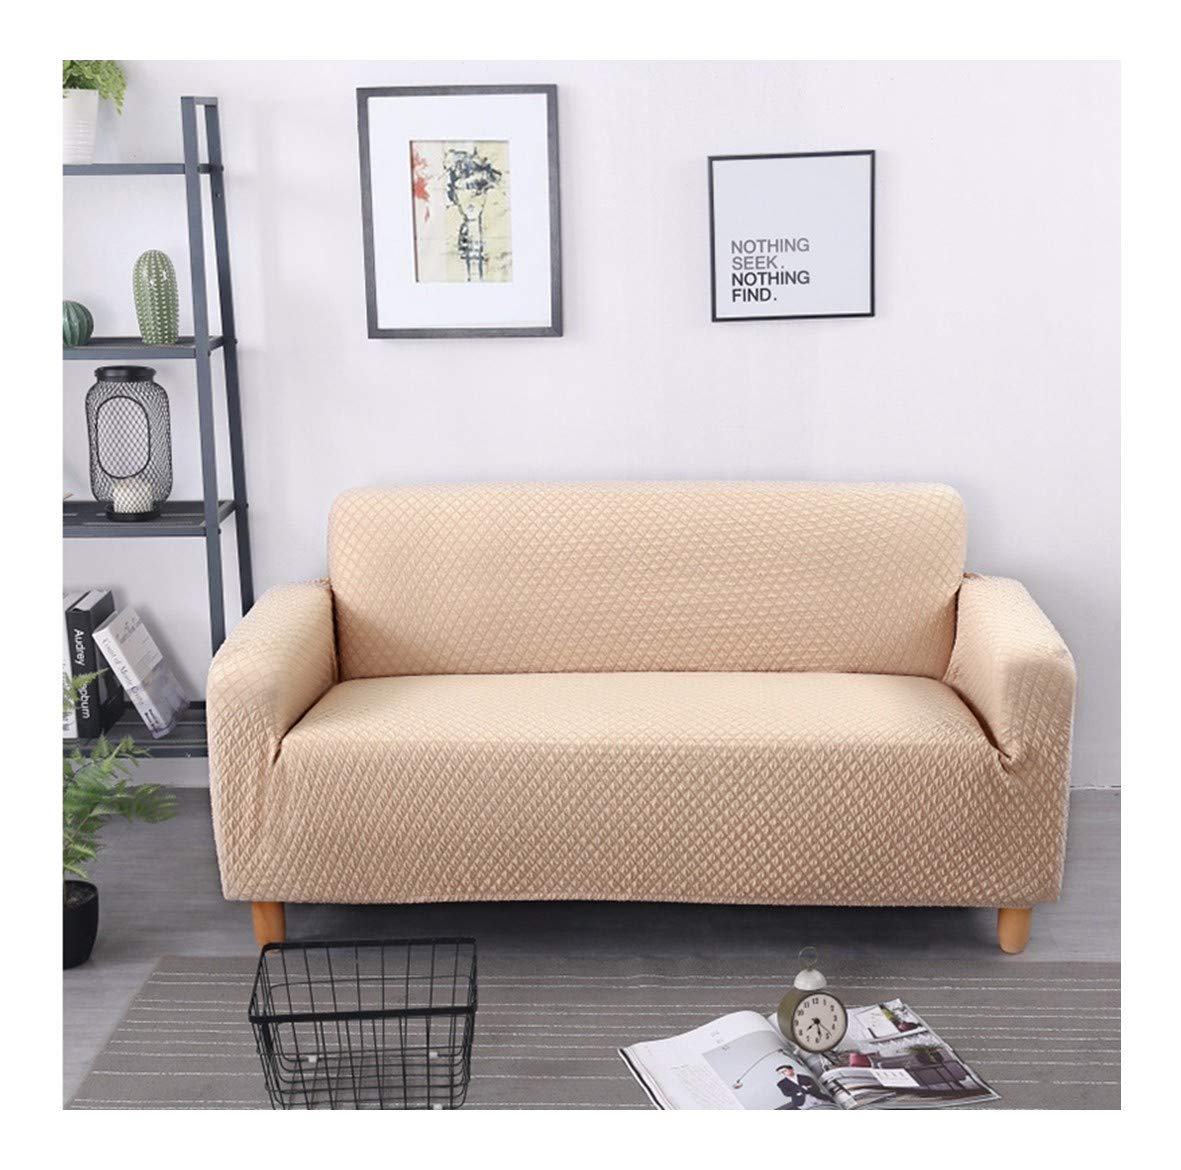 3seat VGUYFUYH Beige Seasons Universal Sofa Cover Polyester Full Package Elasticity Slip-Proof Home Universal Sofa Cover Simple Fashion One Set Durable Dust-Proof Pet Dog Predective Cover,3Seat